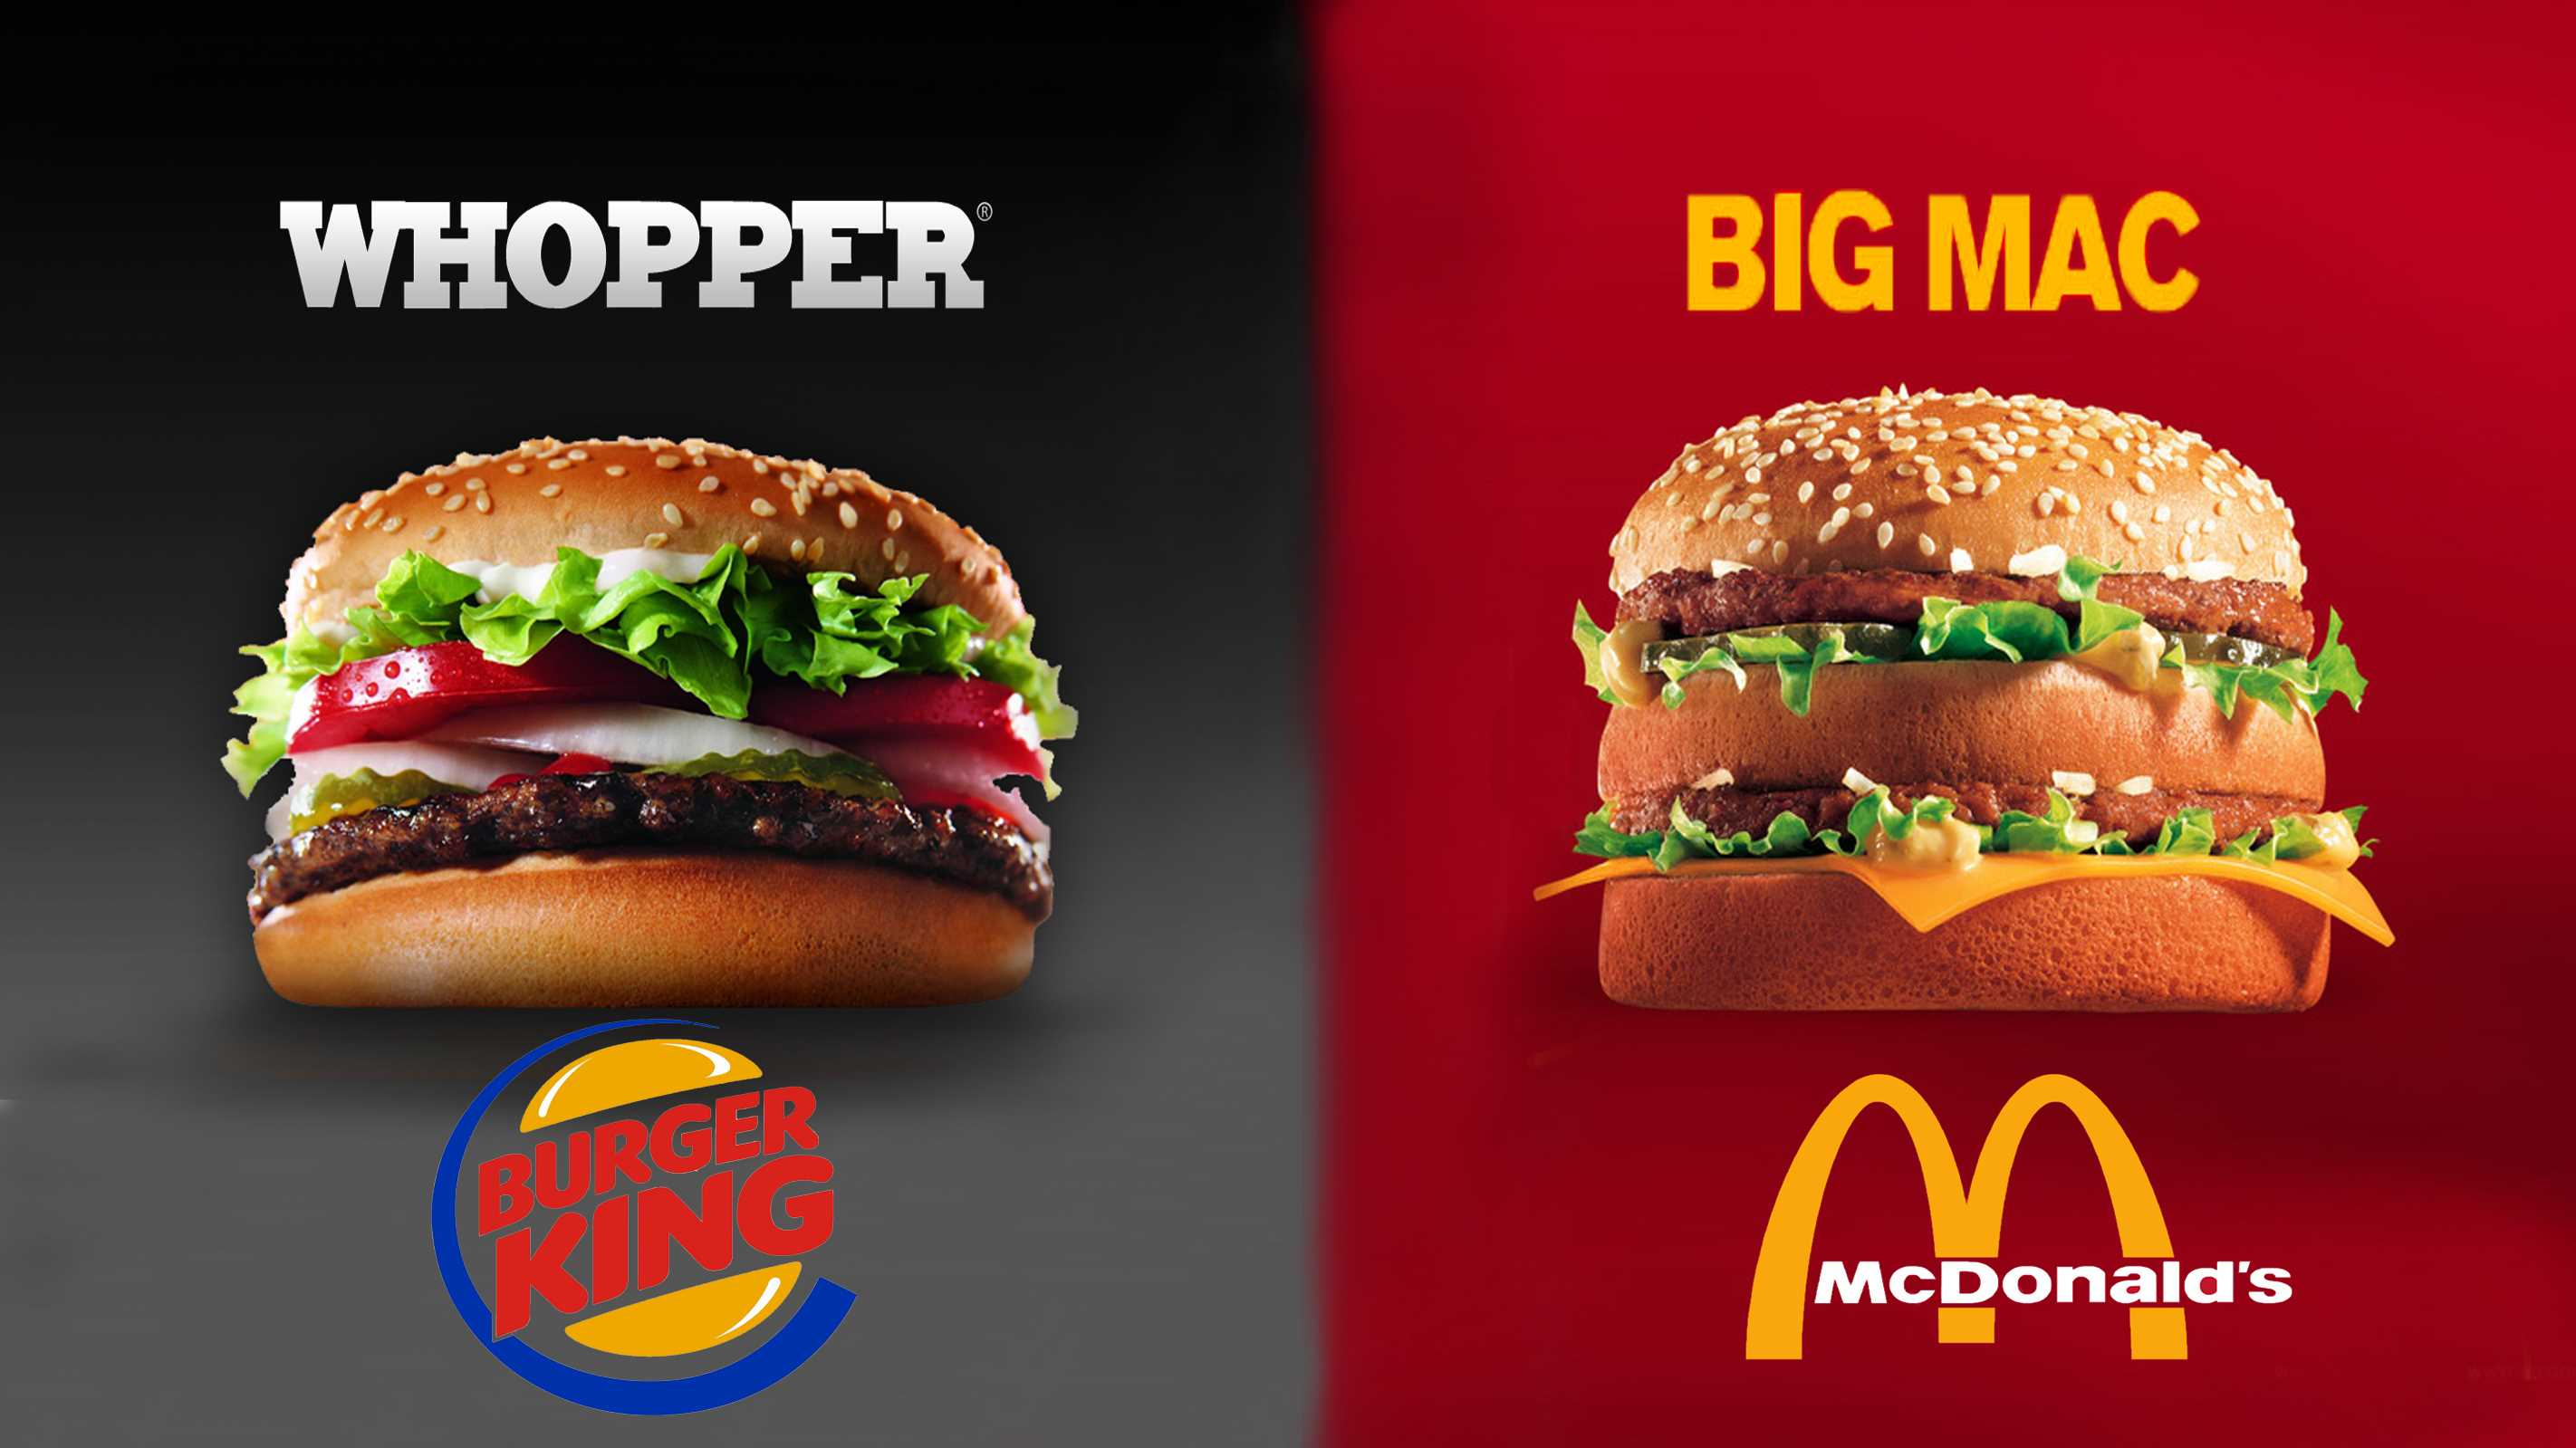 mcdonalds corporation burger king Burger king takes jab at ronald mcdonald with new free whopper promotion elizabeth balboa , benzinga staff writer {{following following : follow}} october 26, 2017 3:13pm comments share: this headline-only article is meant to show you why a stock is moving, the most difficult aspect of stock trading.